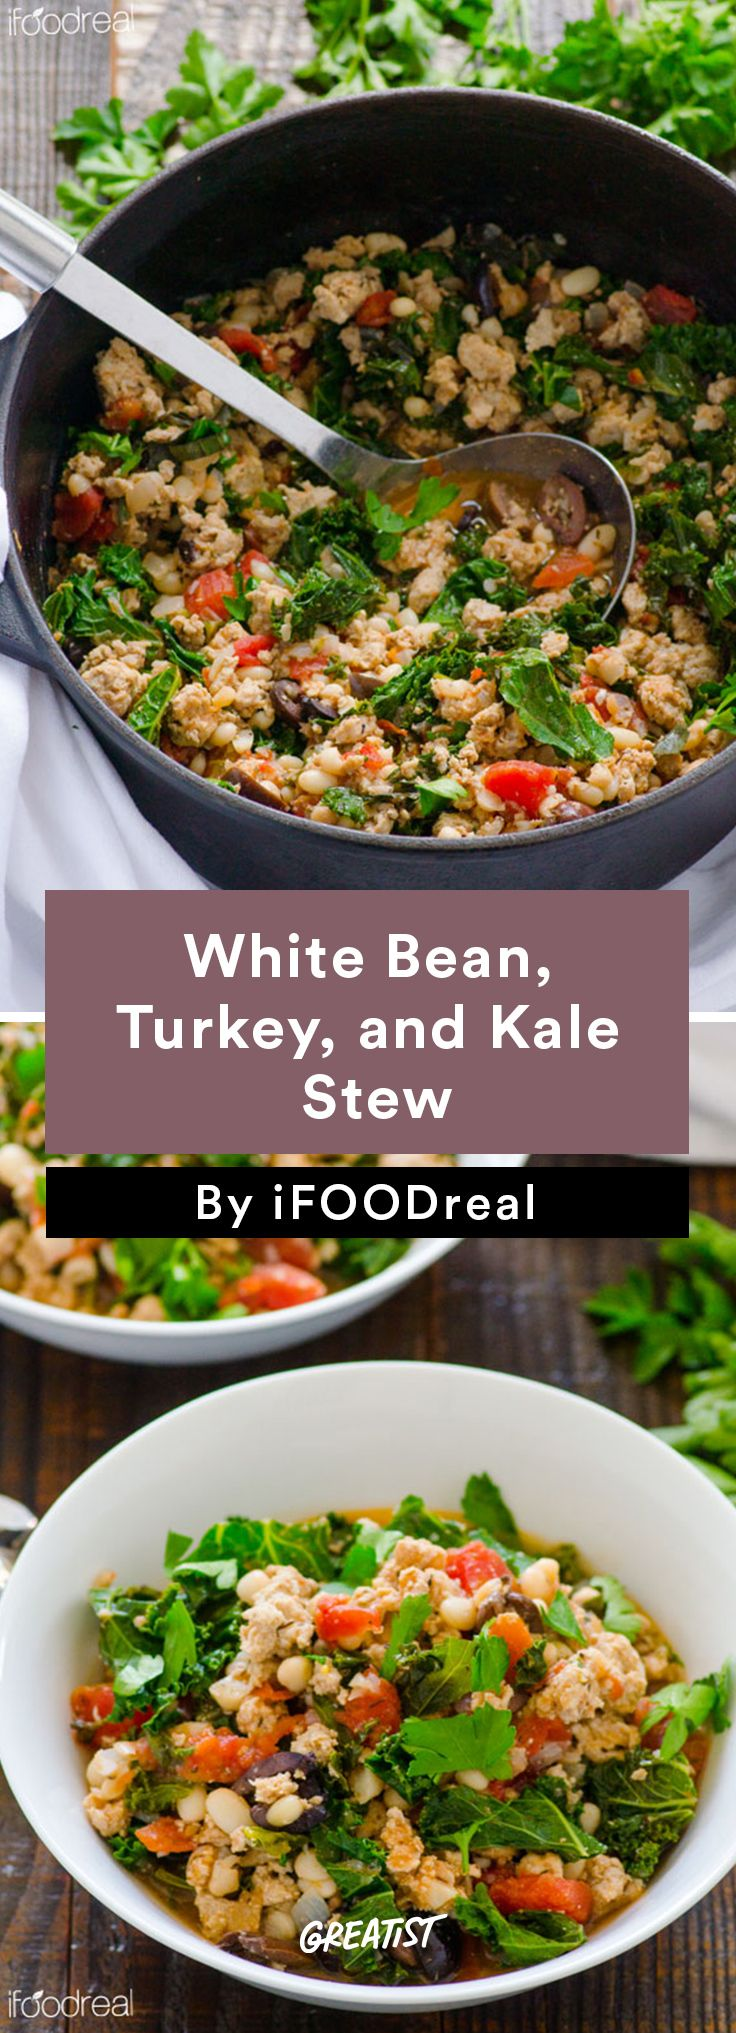 2. White Bean, Turkey, and Kale Stew #healthy #dinner #recipes http://greatist.com/eat/clean-eating-ground-turkey-recipes